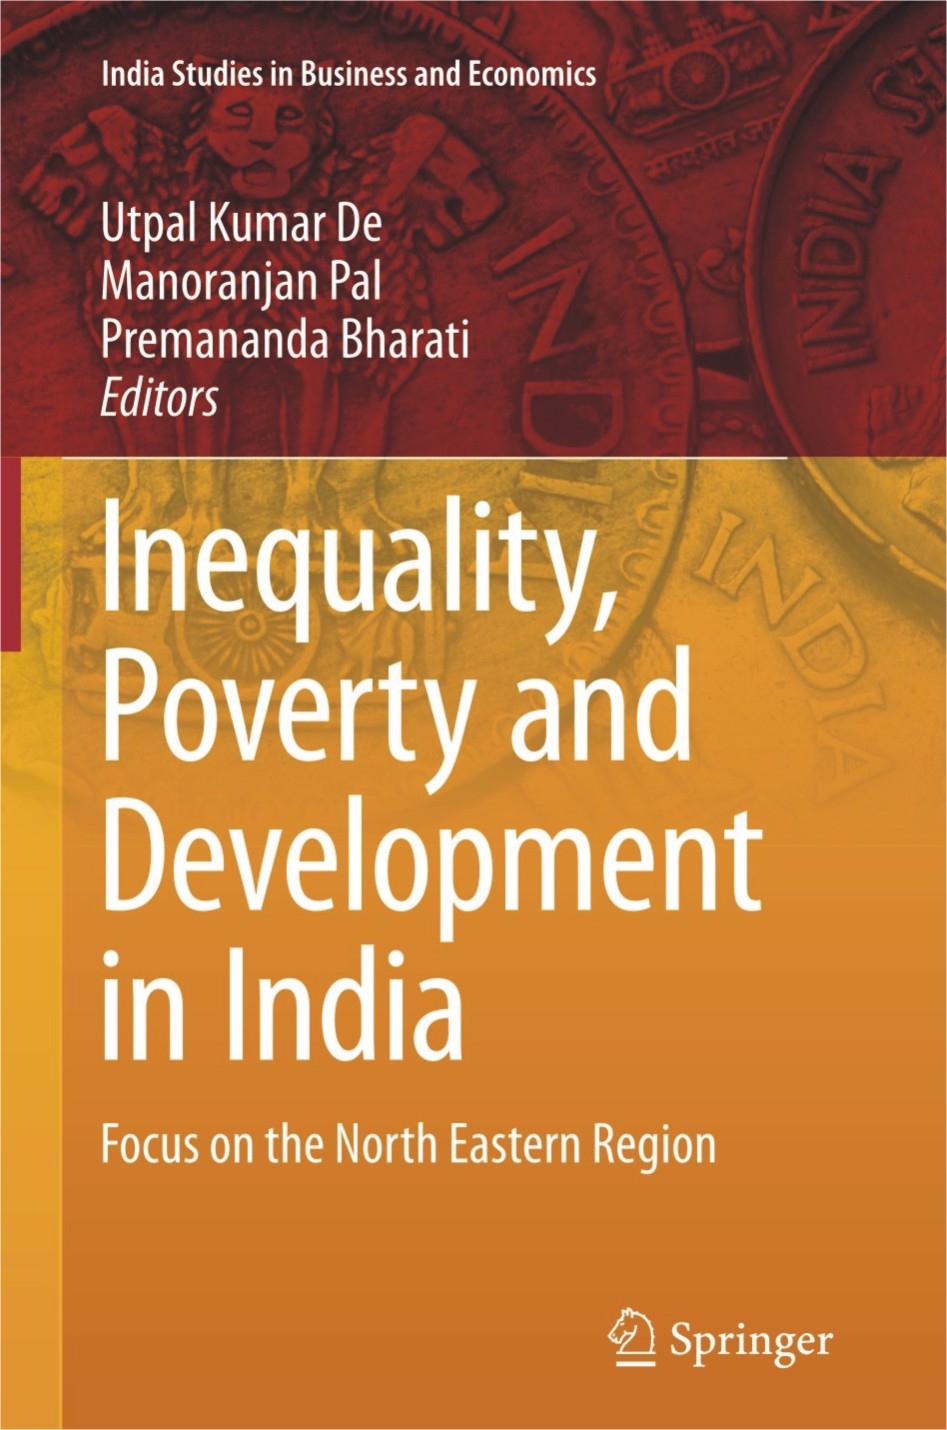 Inequality, Poverty and Development in India: Focu…